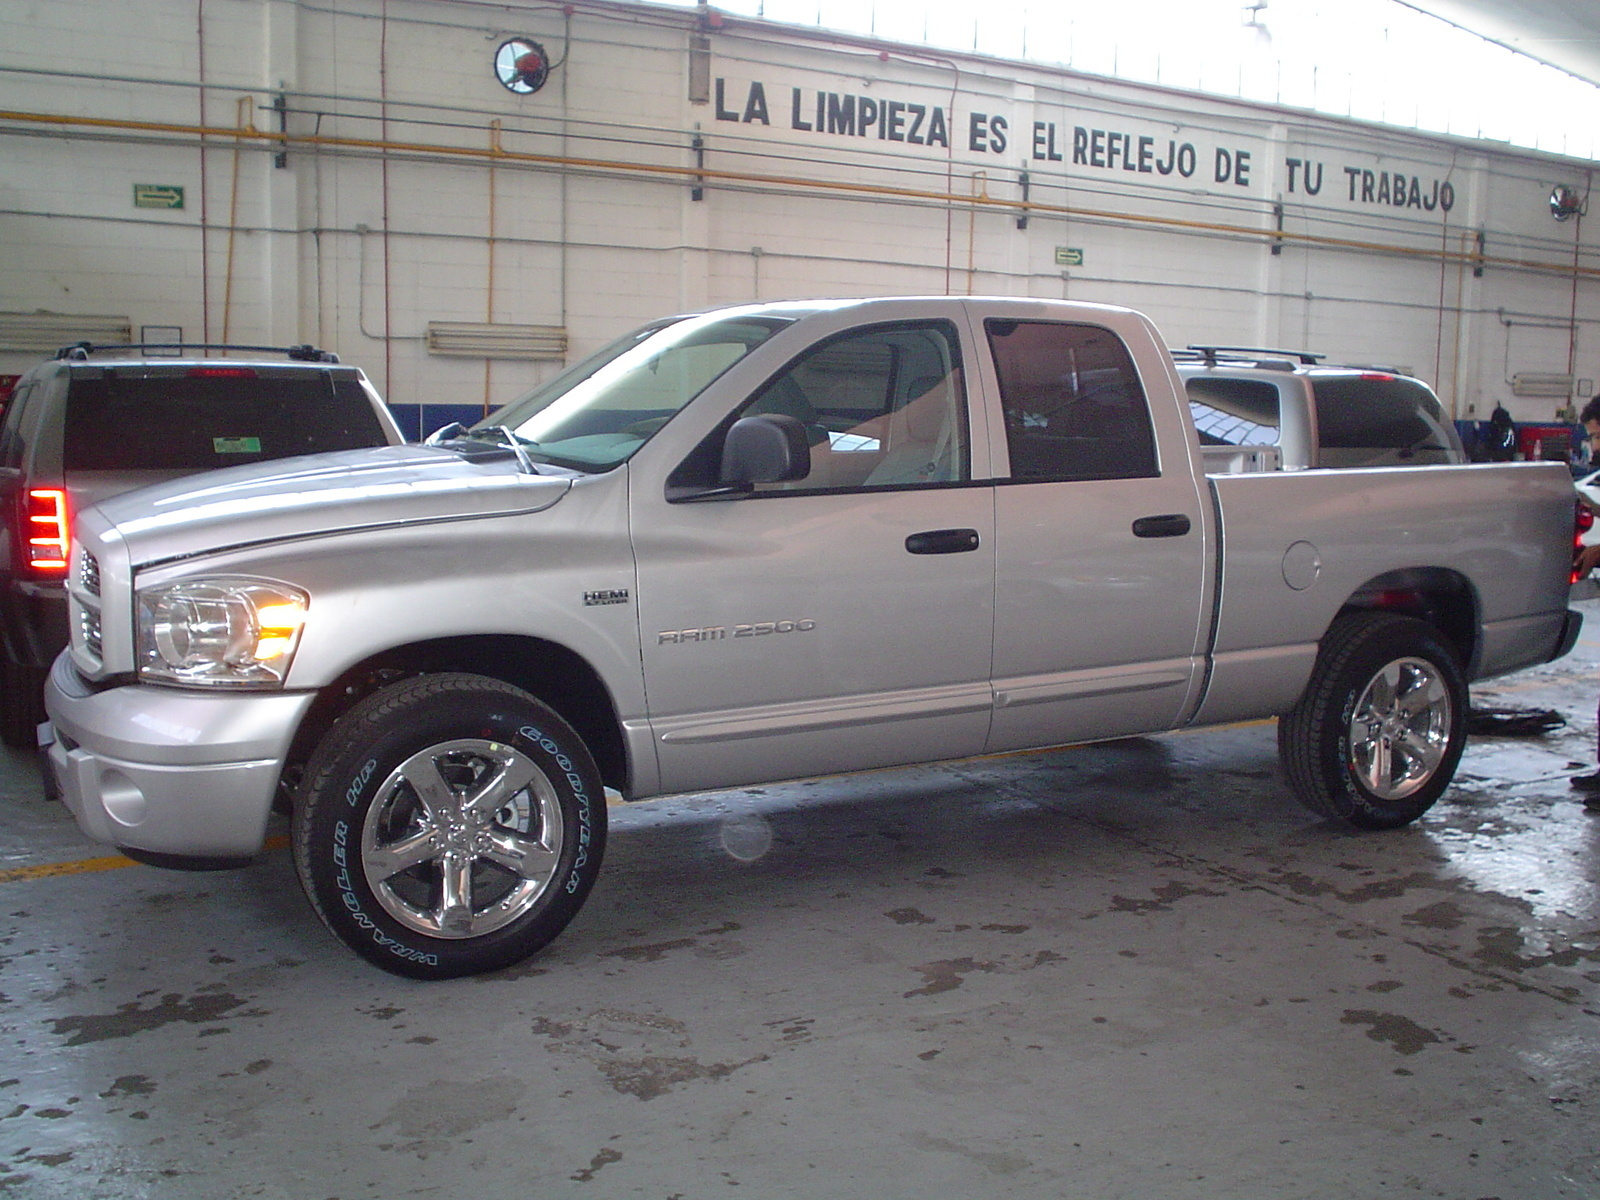 2007 Dodge Ram 1500 Overview CarGurus